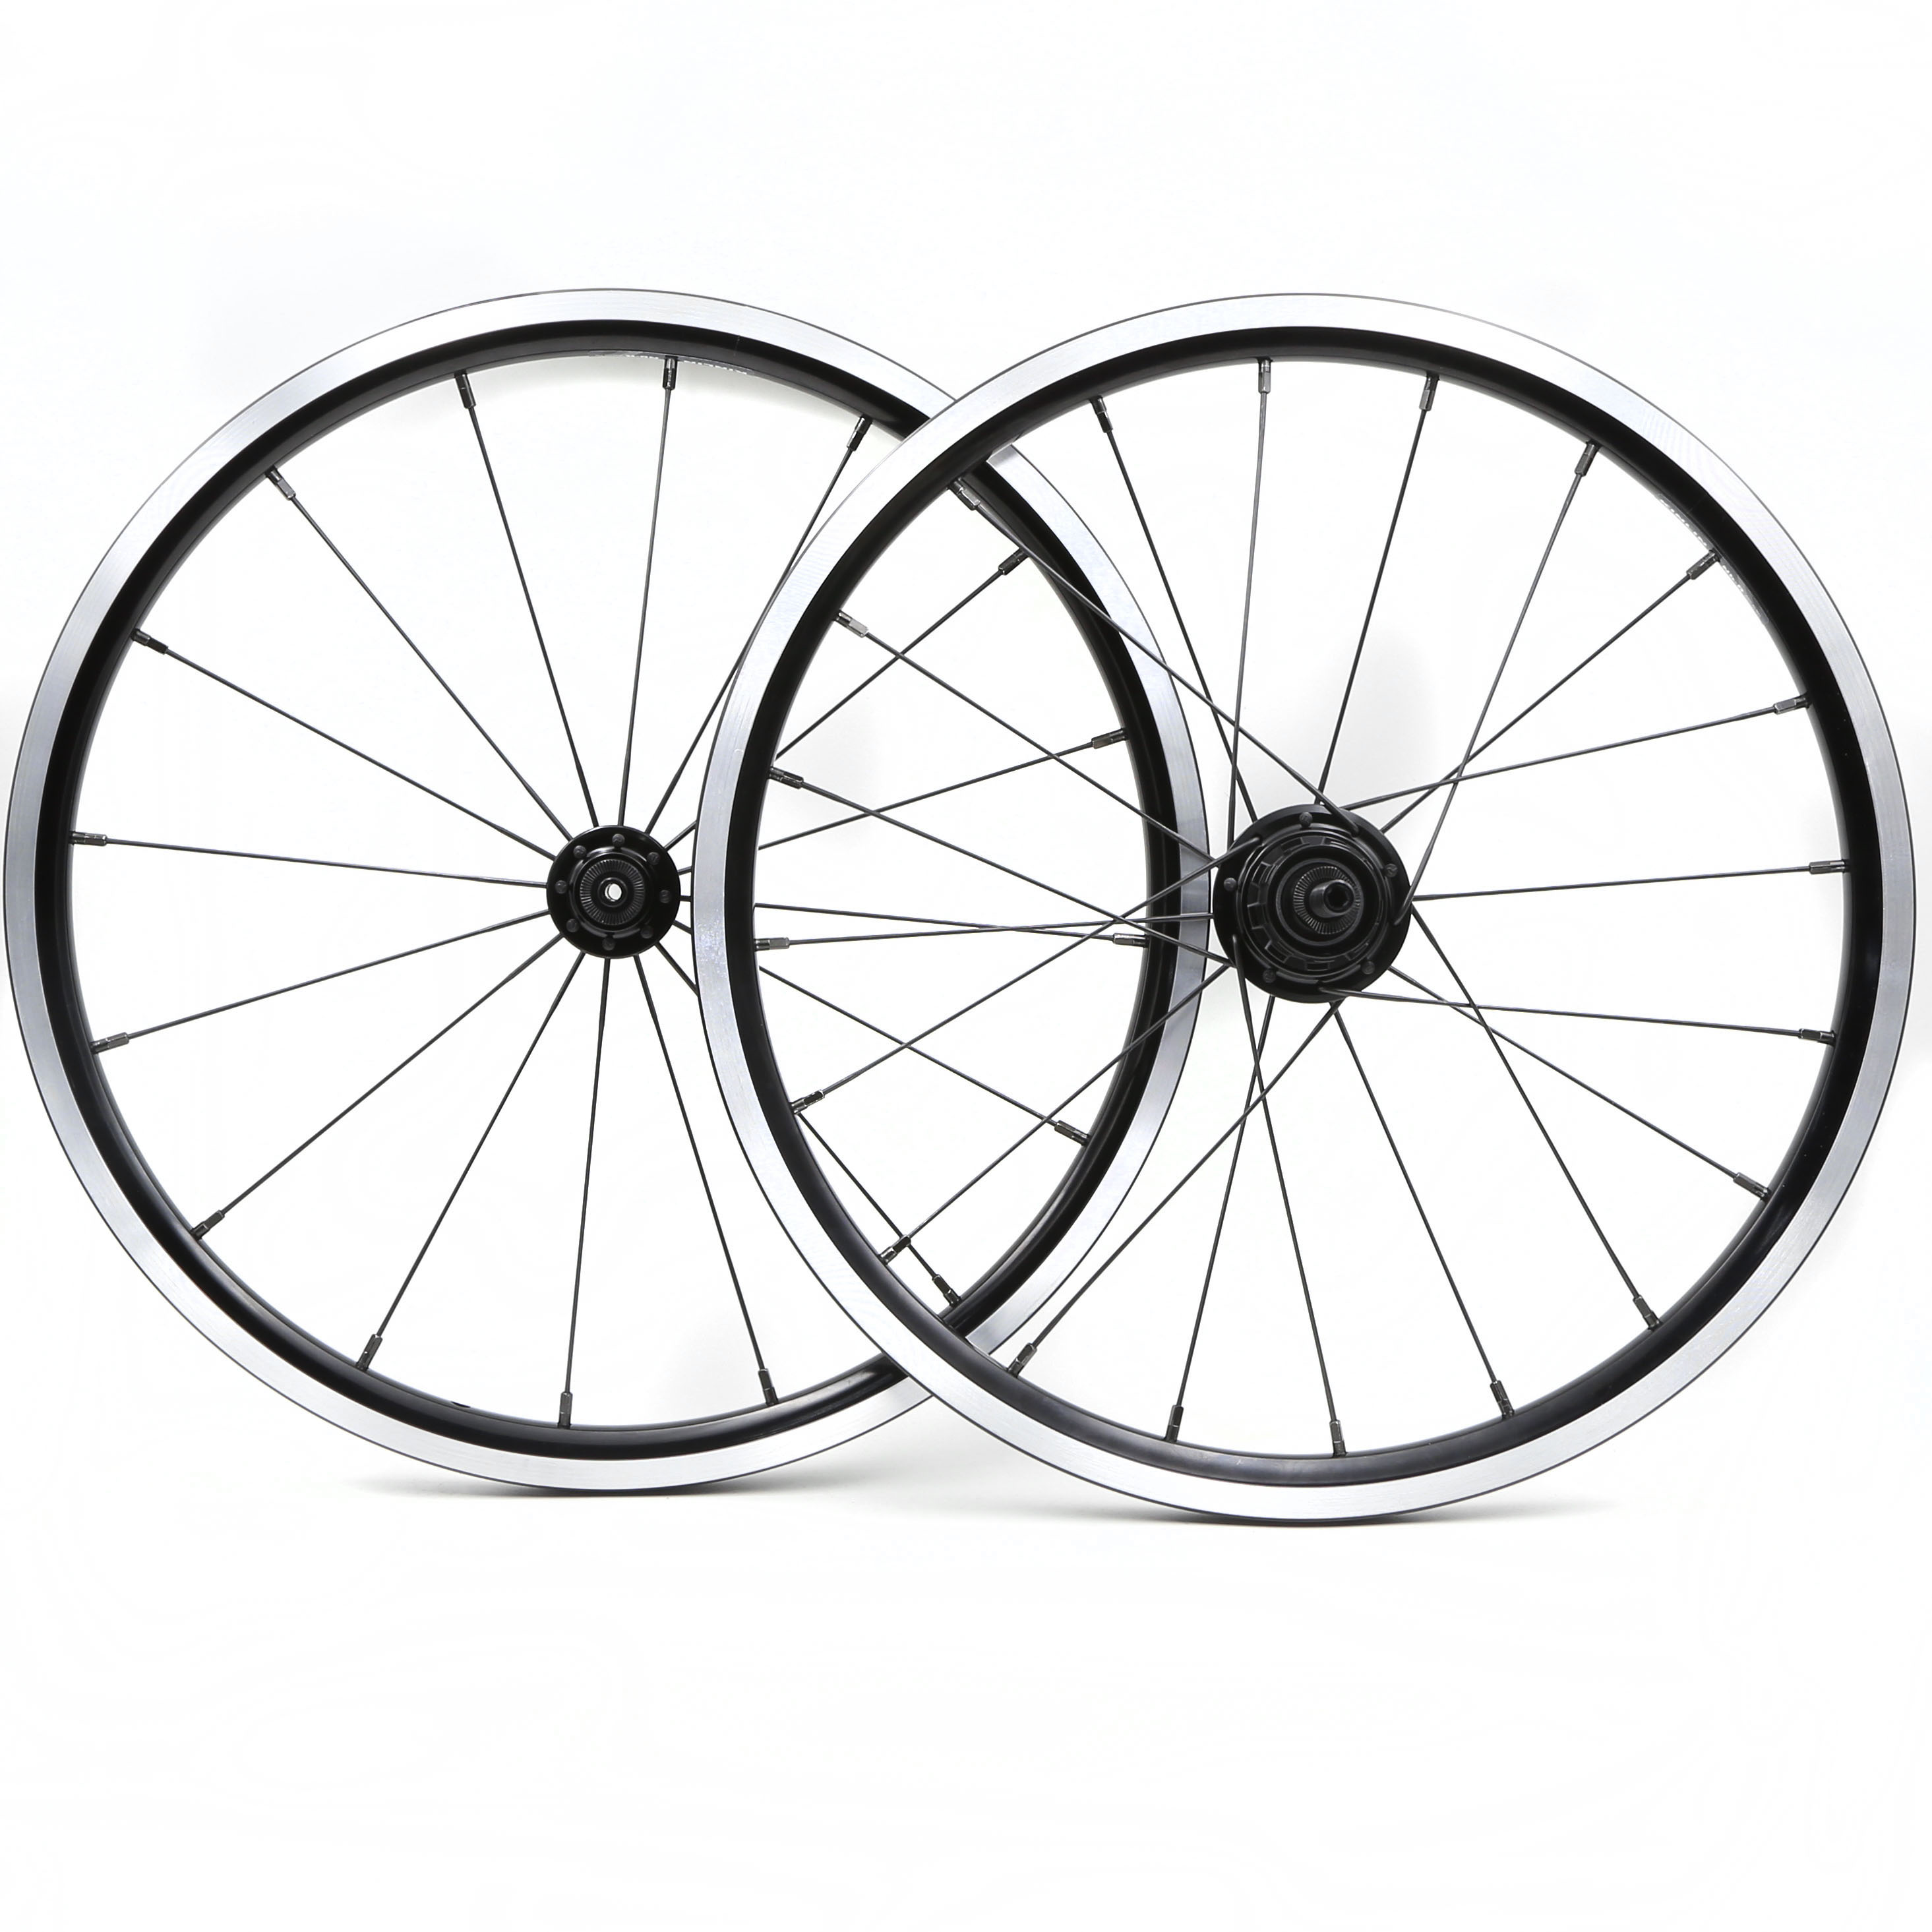 "16 x1 3/8"" ( 349 )   2/3/4/5speed Wheelset 16/20holes for brompton bike(one pair)"